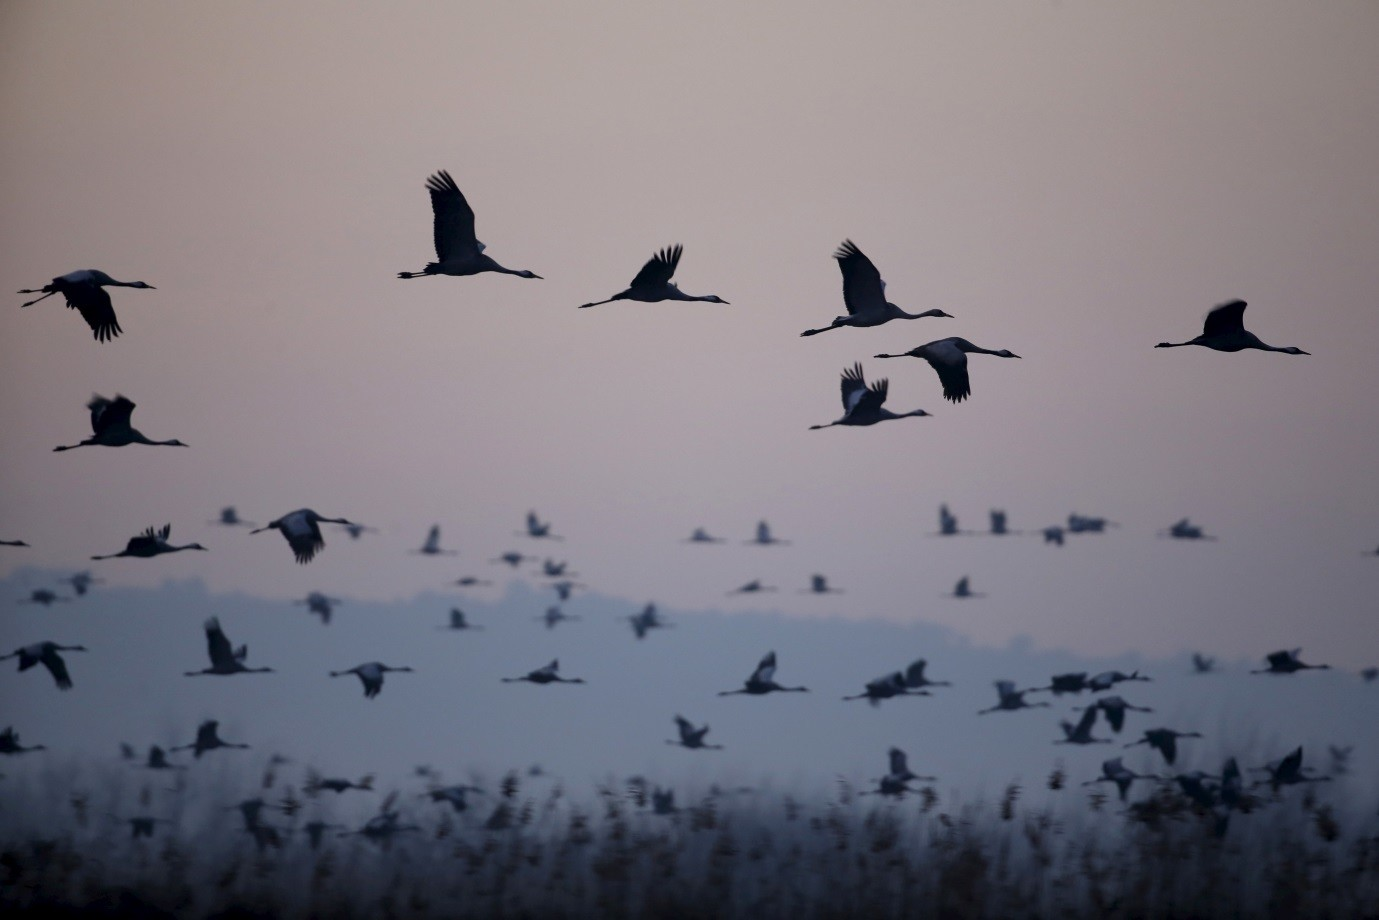 Migrating cranes fly over the Hula Lake Ornithology and Nature Park in northern Israel